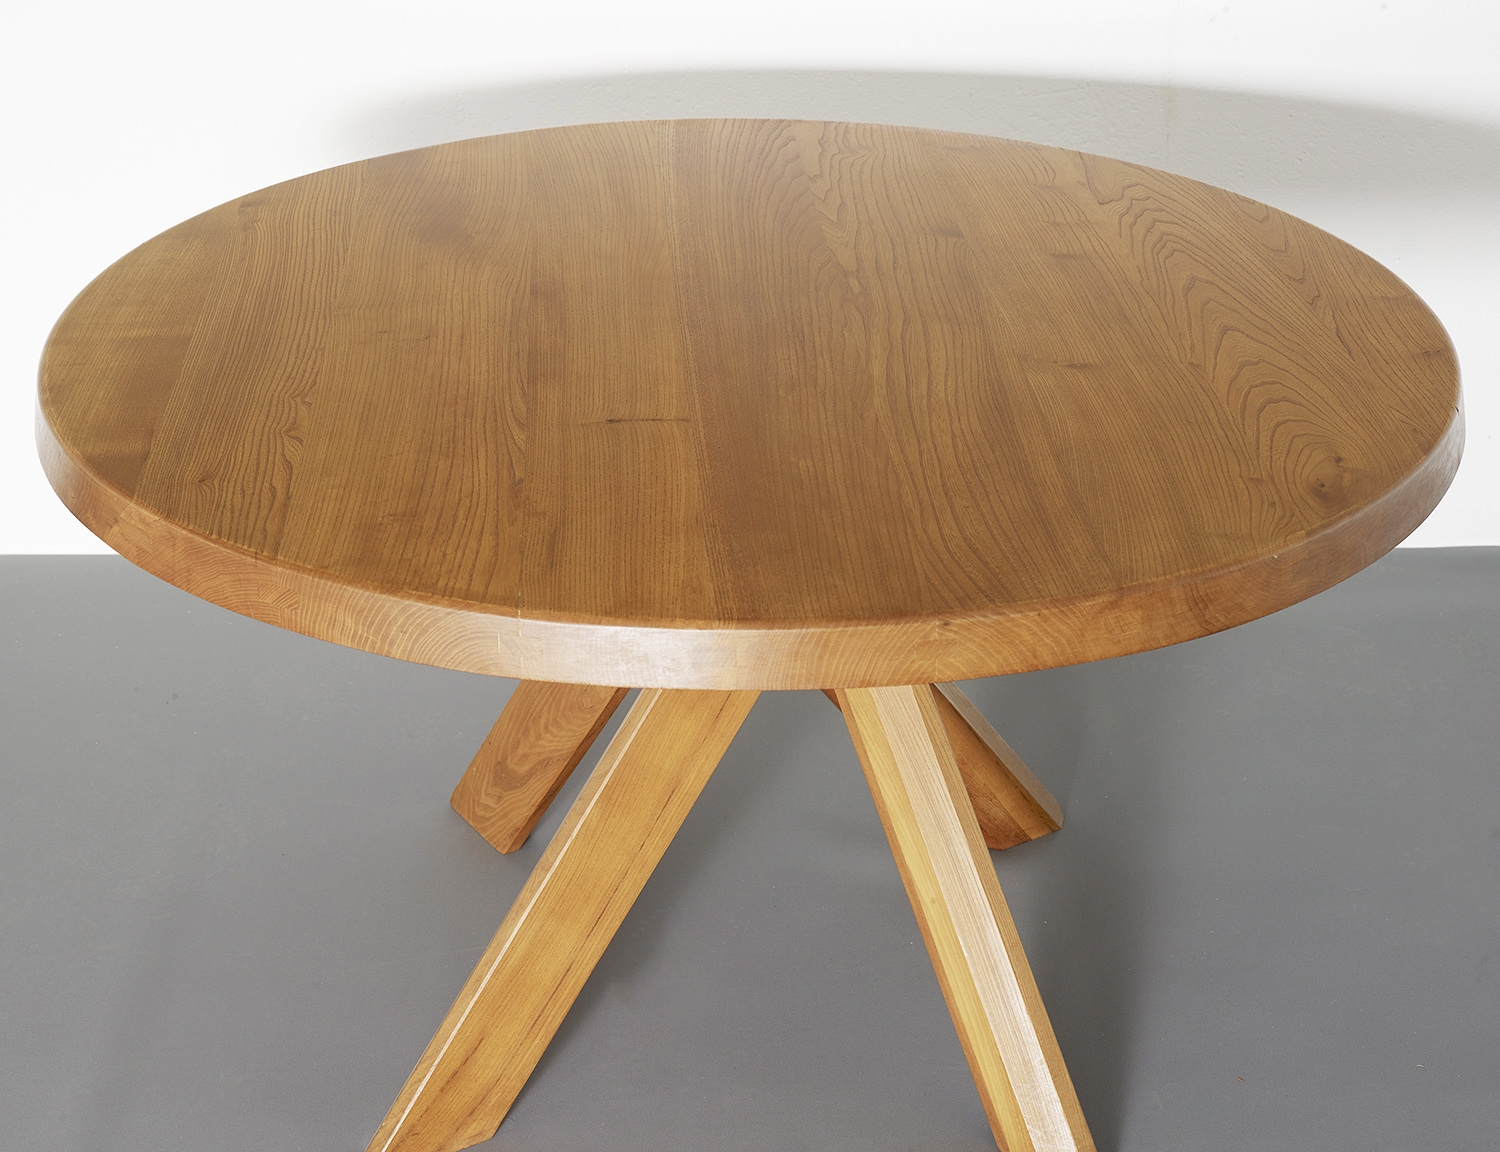 t21c-dining-table-by-pierre-chapo-image-02